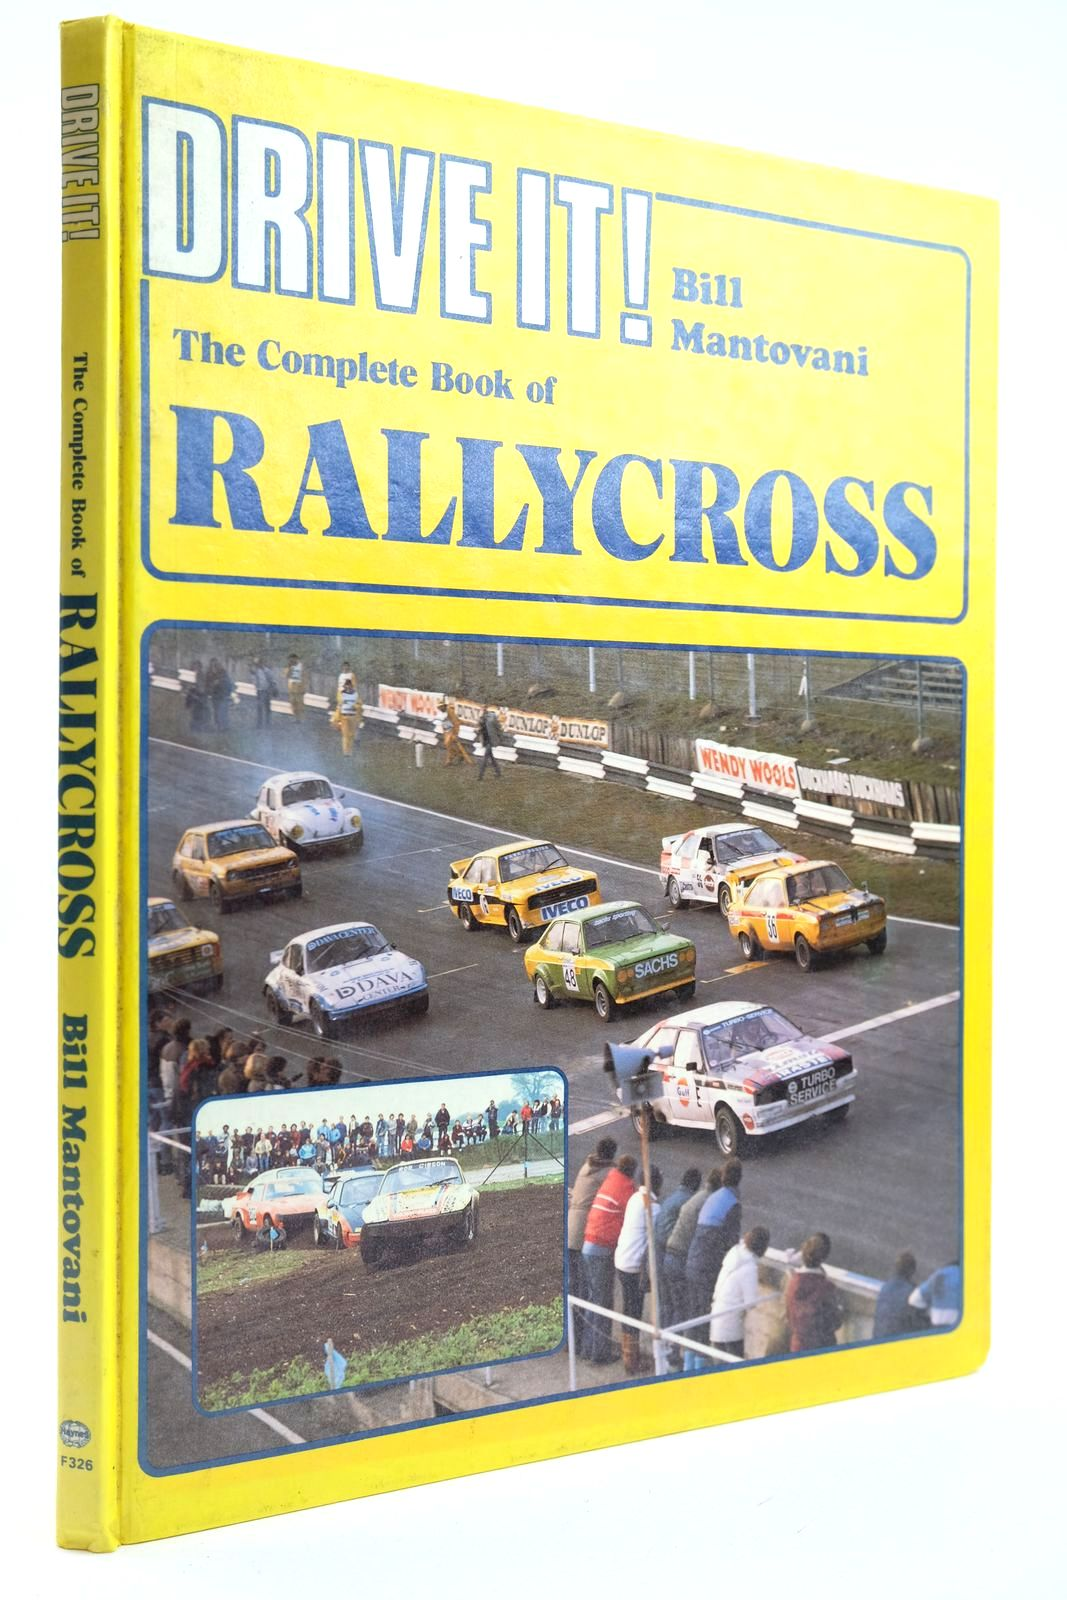 Photo of DRIVE IT! THE COMPLETE BOOK OF RALLYCROSS written by Mantovani, Bill published by Haynes Publishing Group (STOCK CODE: 2132260)  for sale by Stella & Rose's Books